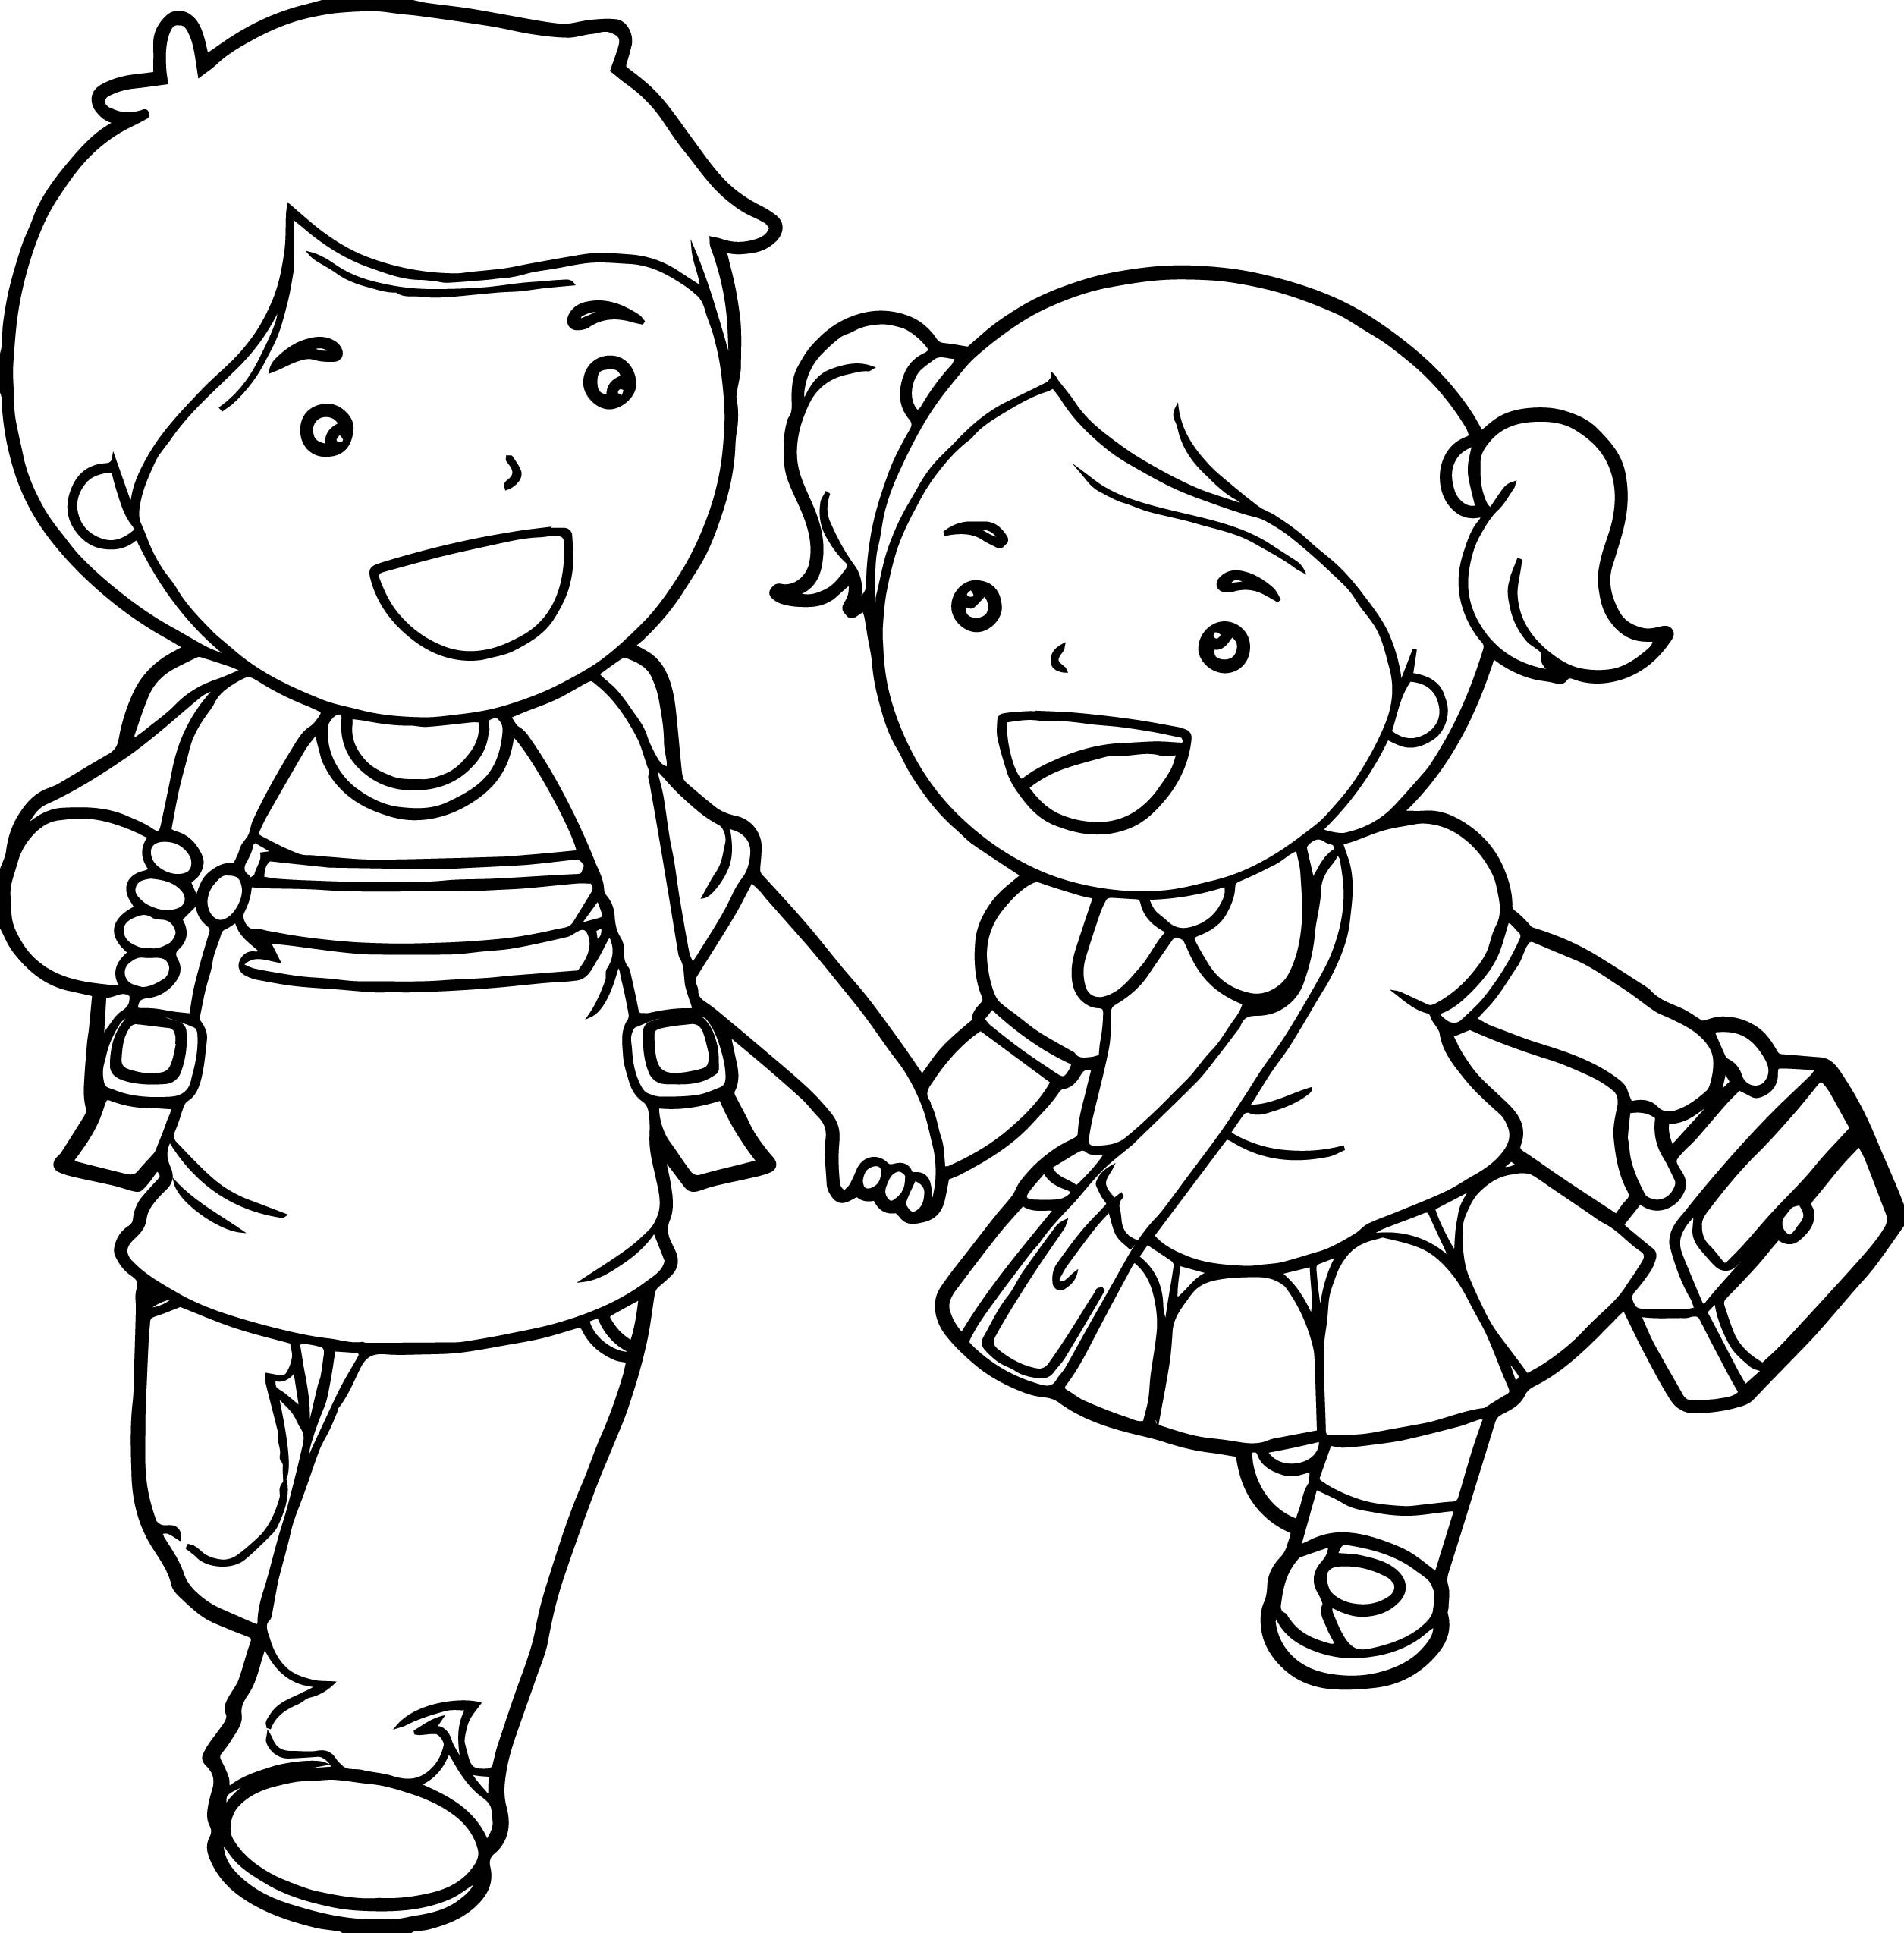 2510x2548 Schoolboy Coloring Page For Kids Luxury Coloring Pages For Boys